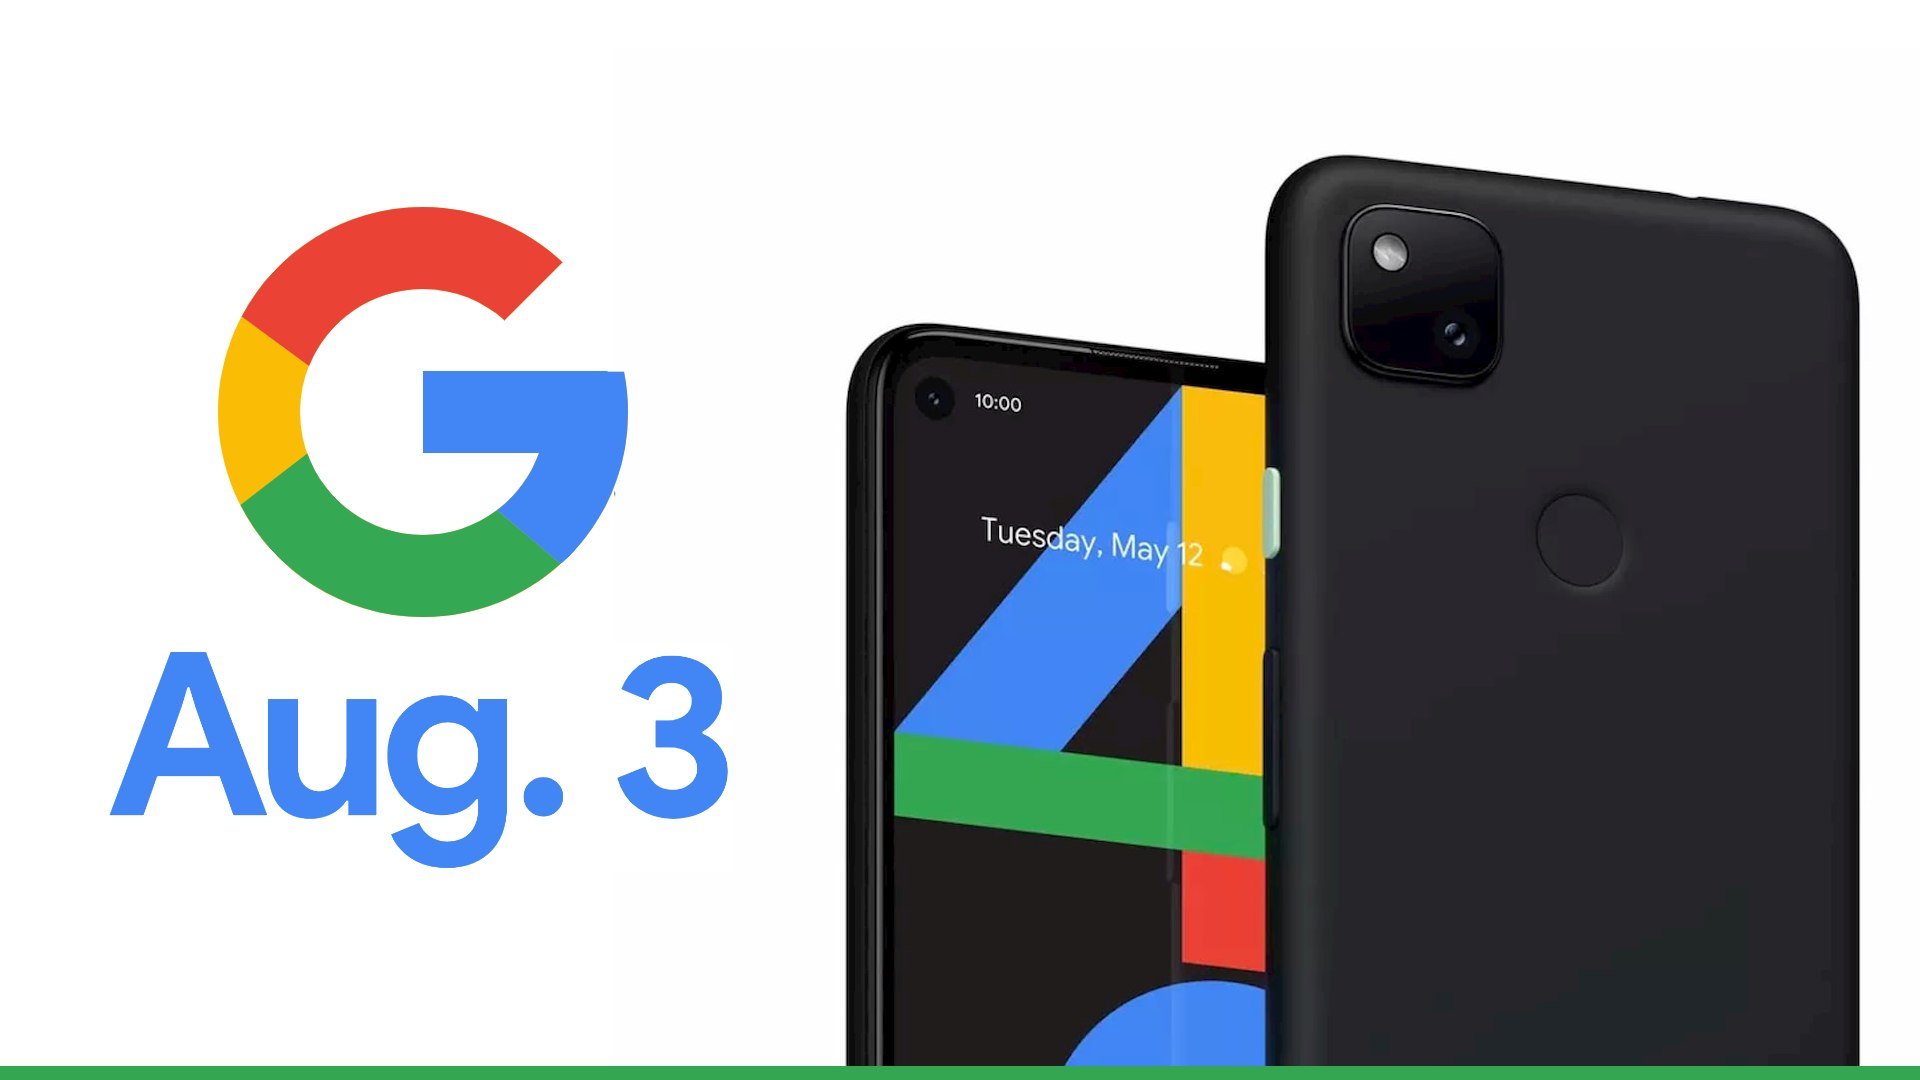 Google confirms an August 3rd launch for the Pixel 4a with a fun puzzle